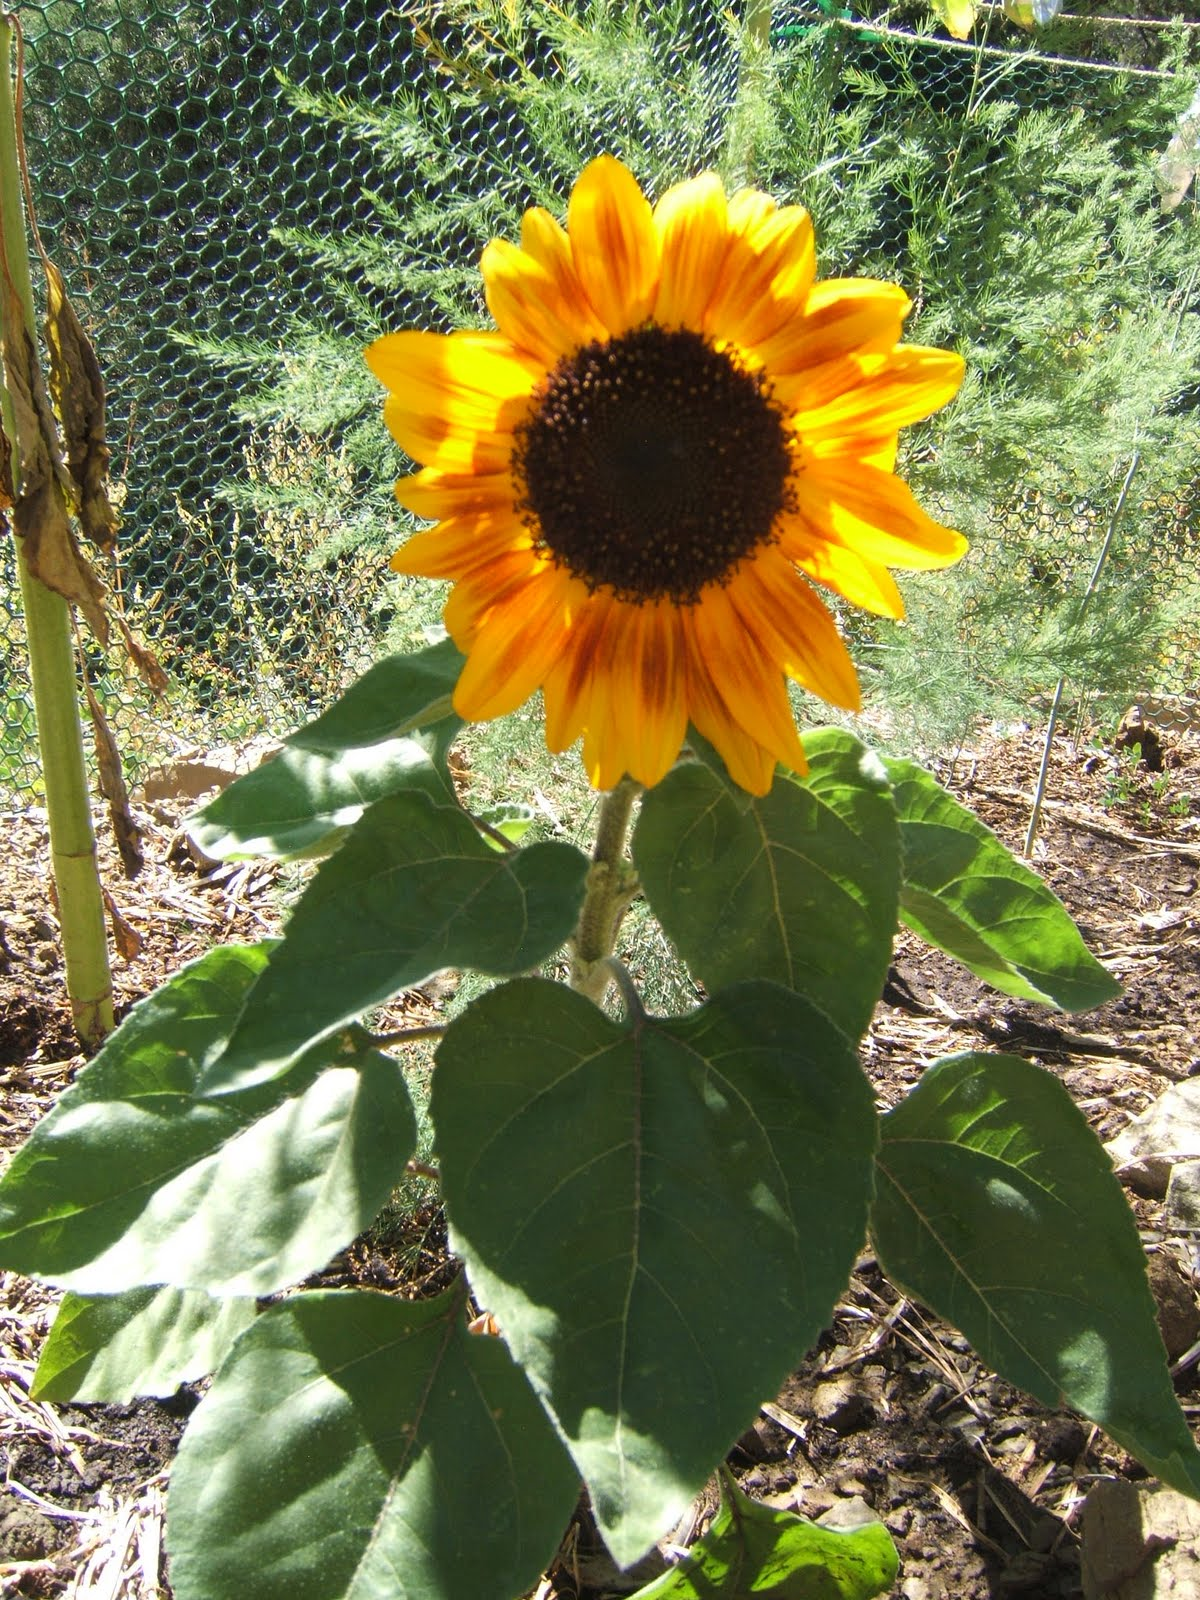 Small Music Box Sunflower, only three feet tall.